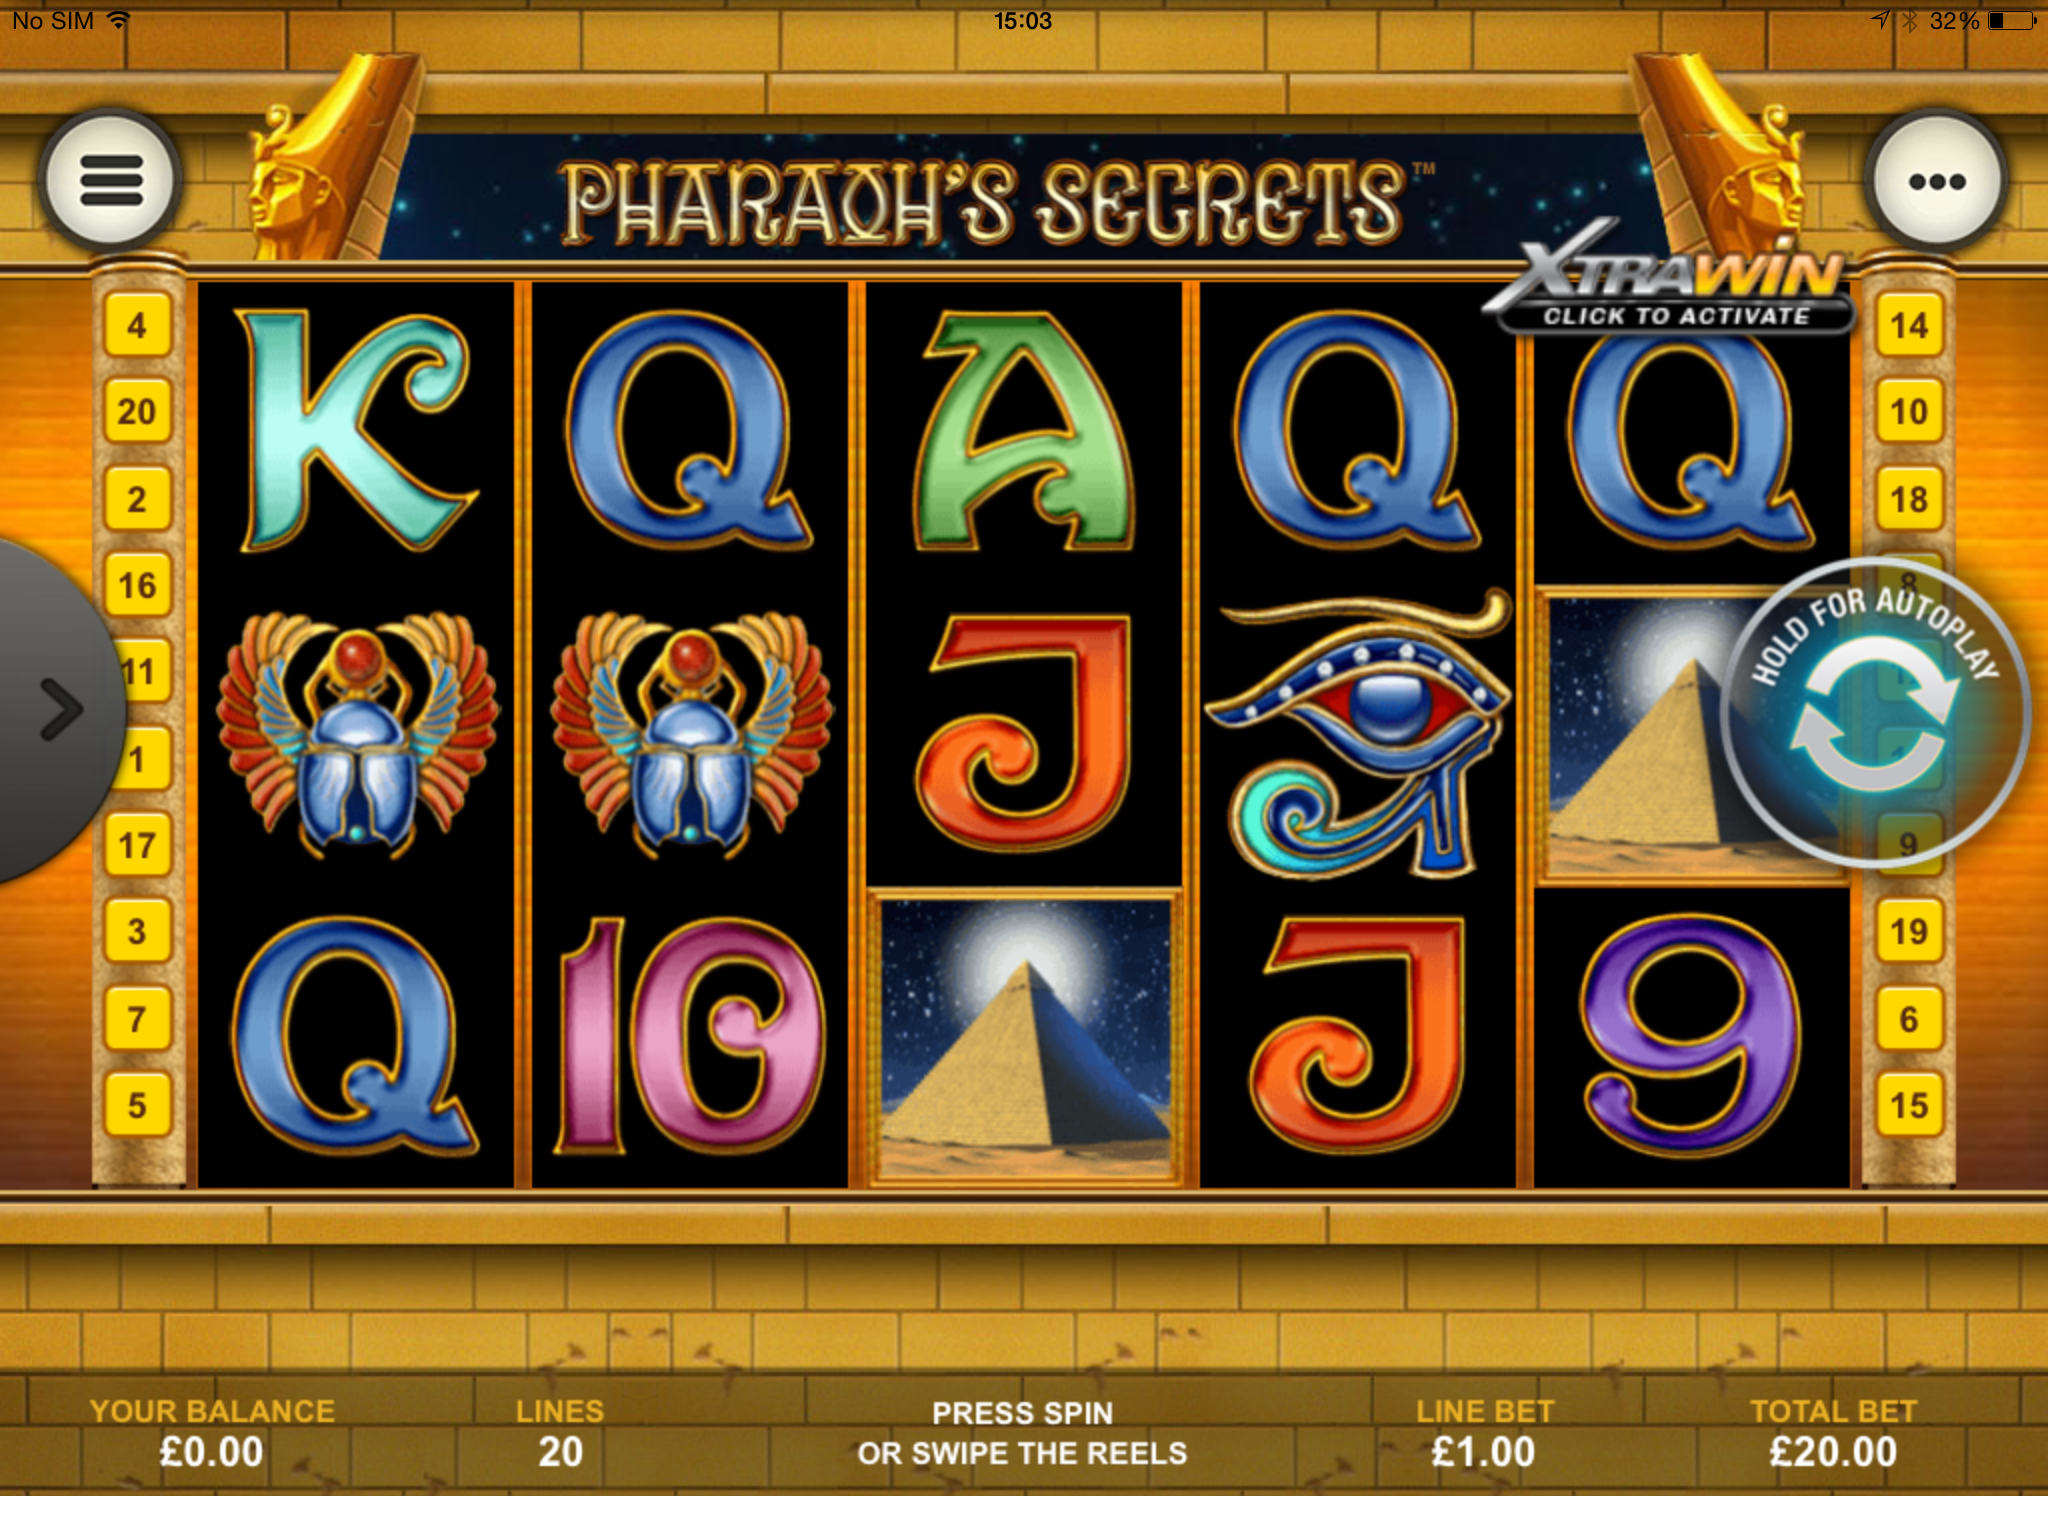 Play Pharaohs Secrets Online Slots at Casino.com UK